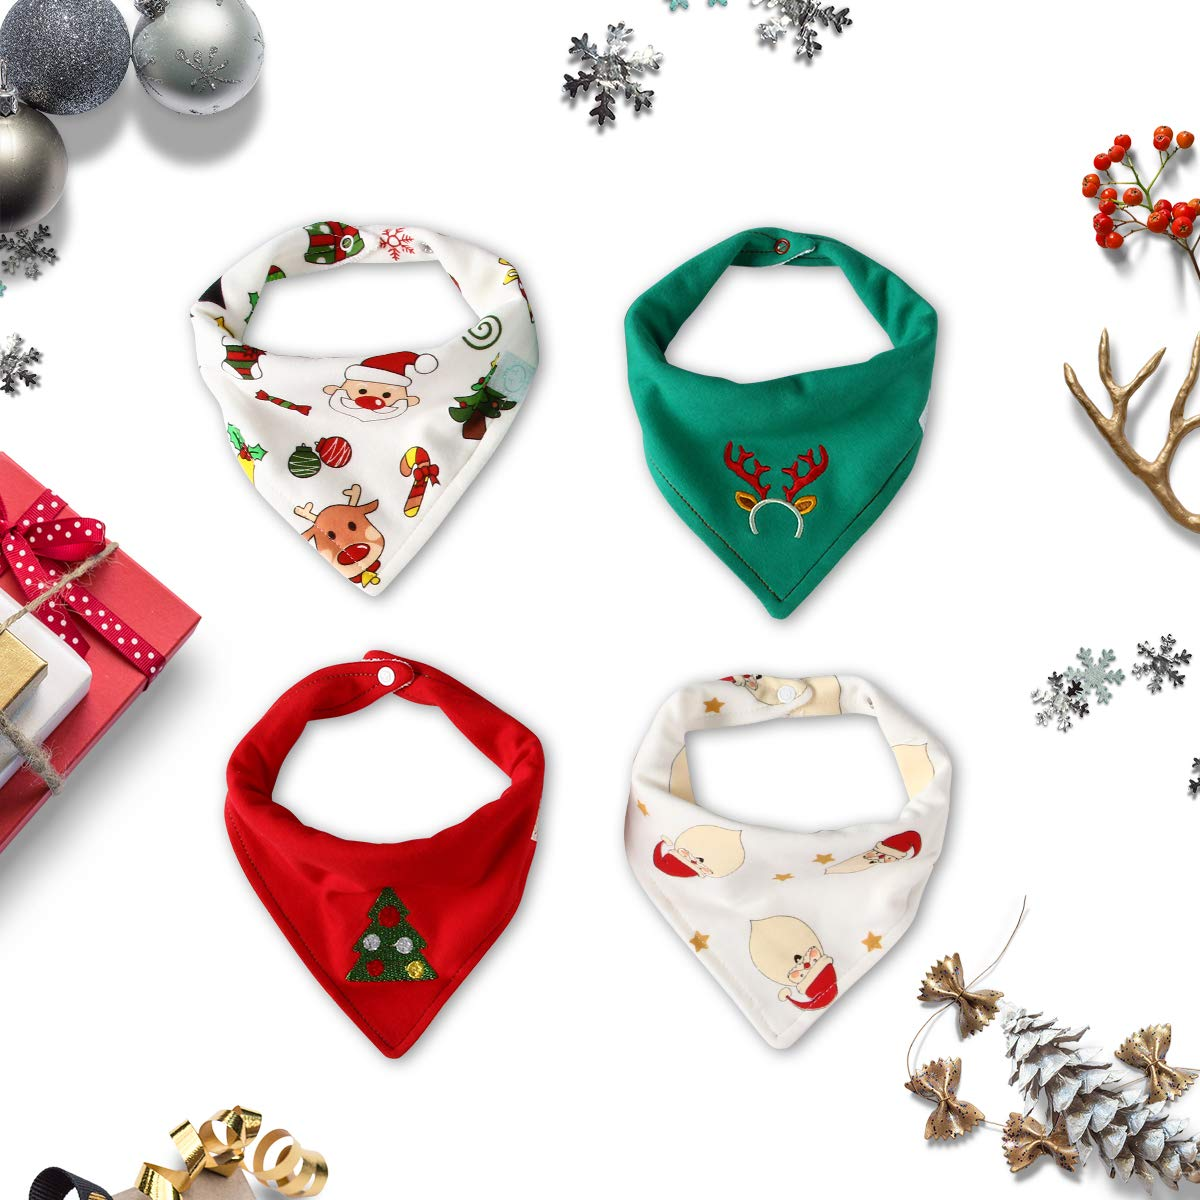 Christmas Baby Bandana Bib Soft Absorbent Cute Baby Bibs for Teething Drooling, Perfect Baby Shower Gift Set by Little Dimsum (Christmas 4-Piece Set)